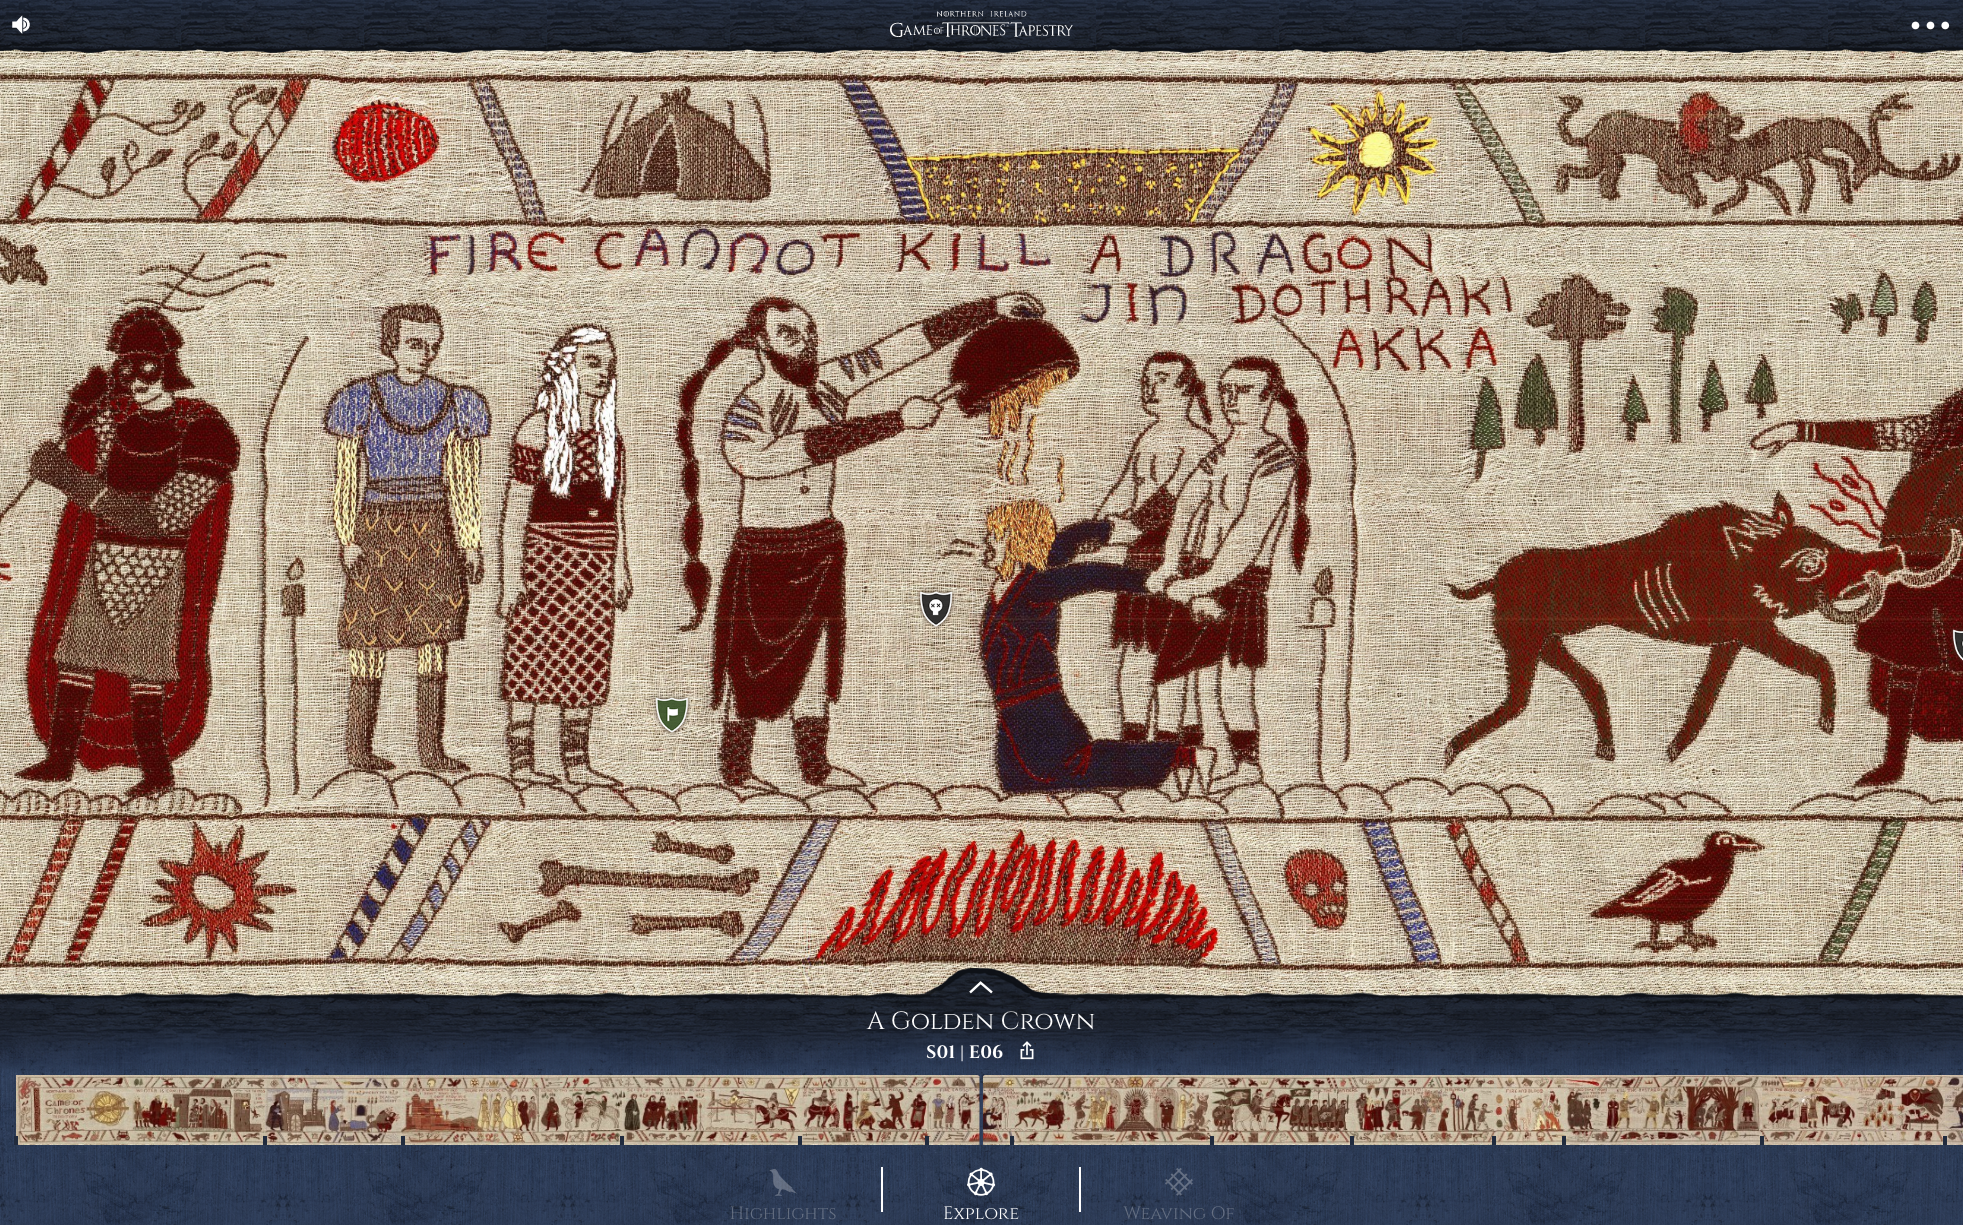 Game of Thrones tapestry tells the story of season 7